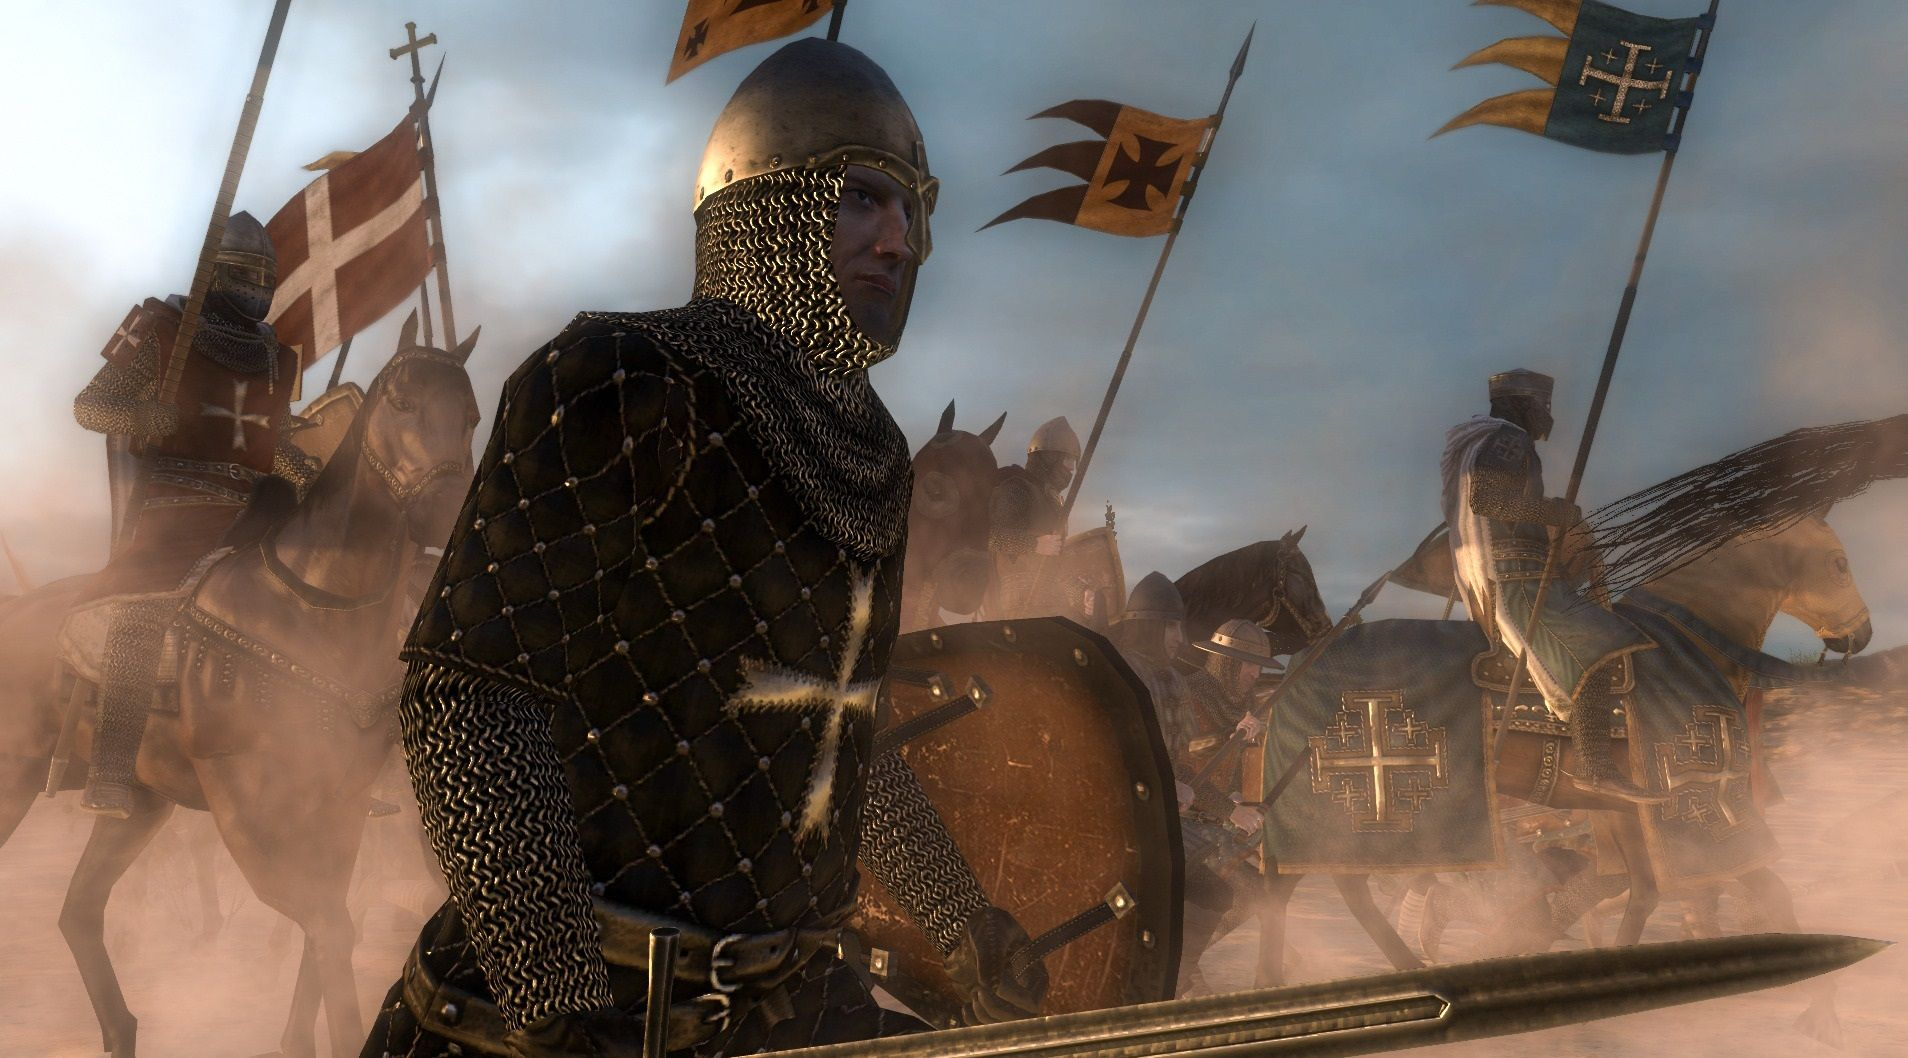 Montgisard (1177): Saladin attempts to destroy a small army from the Kingdom of Jerusalem with an army more than five times its size. Though there are only 375 knights, the Crusaders are led by the remarkable King Baldwin IV. The outcome – one of the greatest Crusader victories.